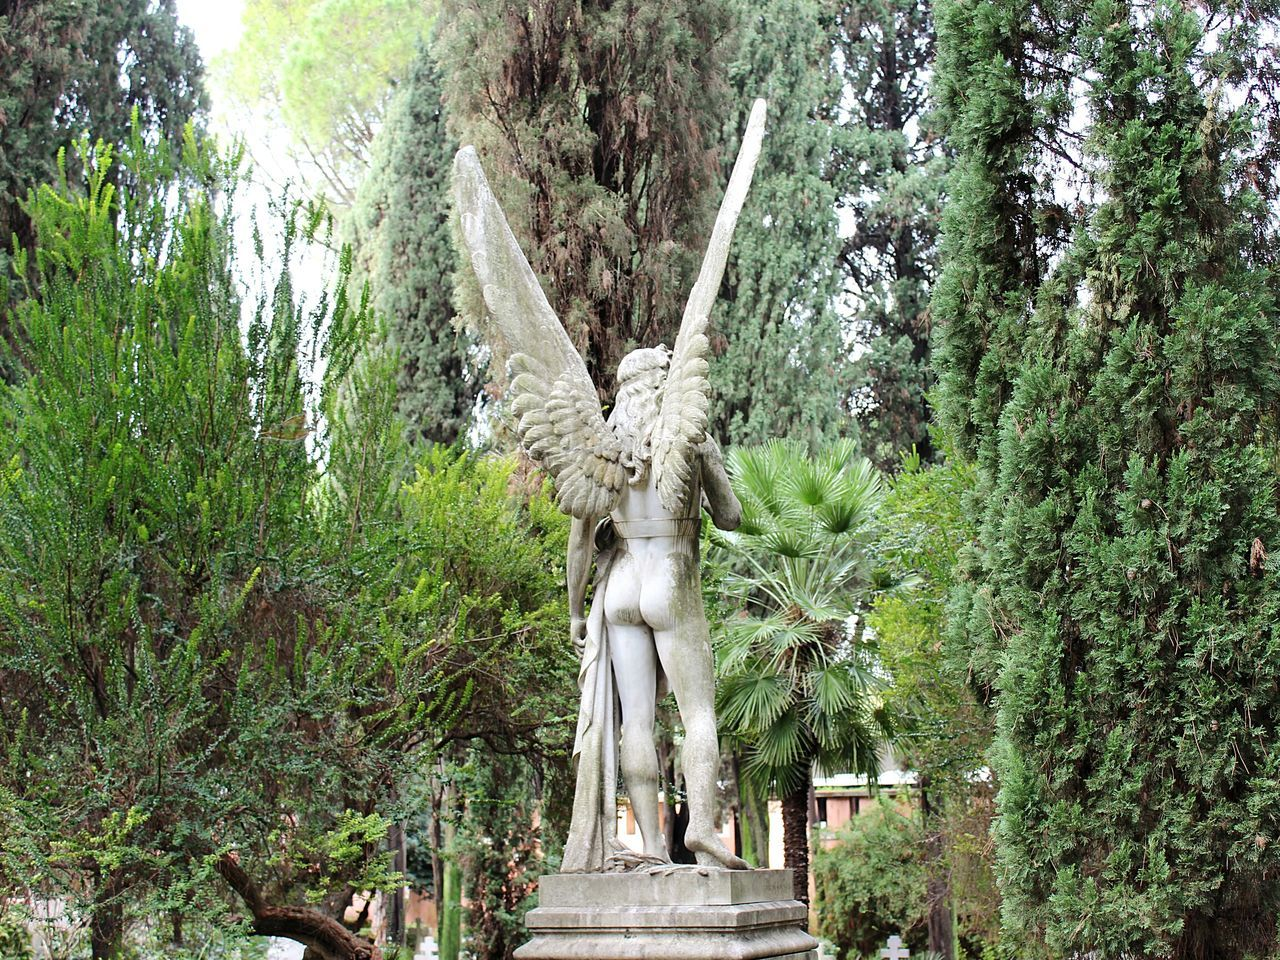 Tree Art And Craft Sculpture Statue Growth Nature Human Representation No People Low Angle View Green Color Beauty In Nature Outdoors Day Religion Angel Wings Wings Angel Taking Photos Rome, Italy EyeEm VSCO Monument Religious Architecture Faith Humility